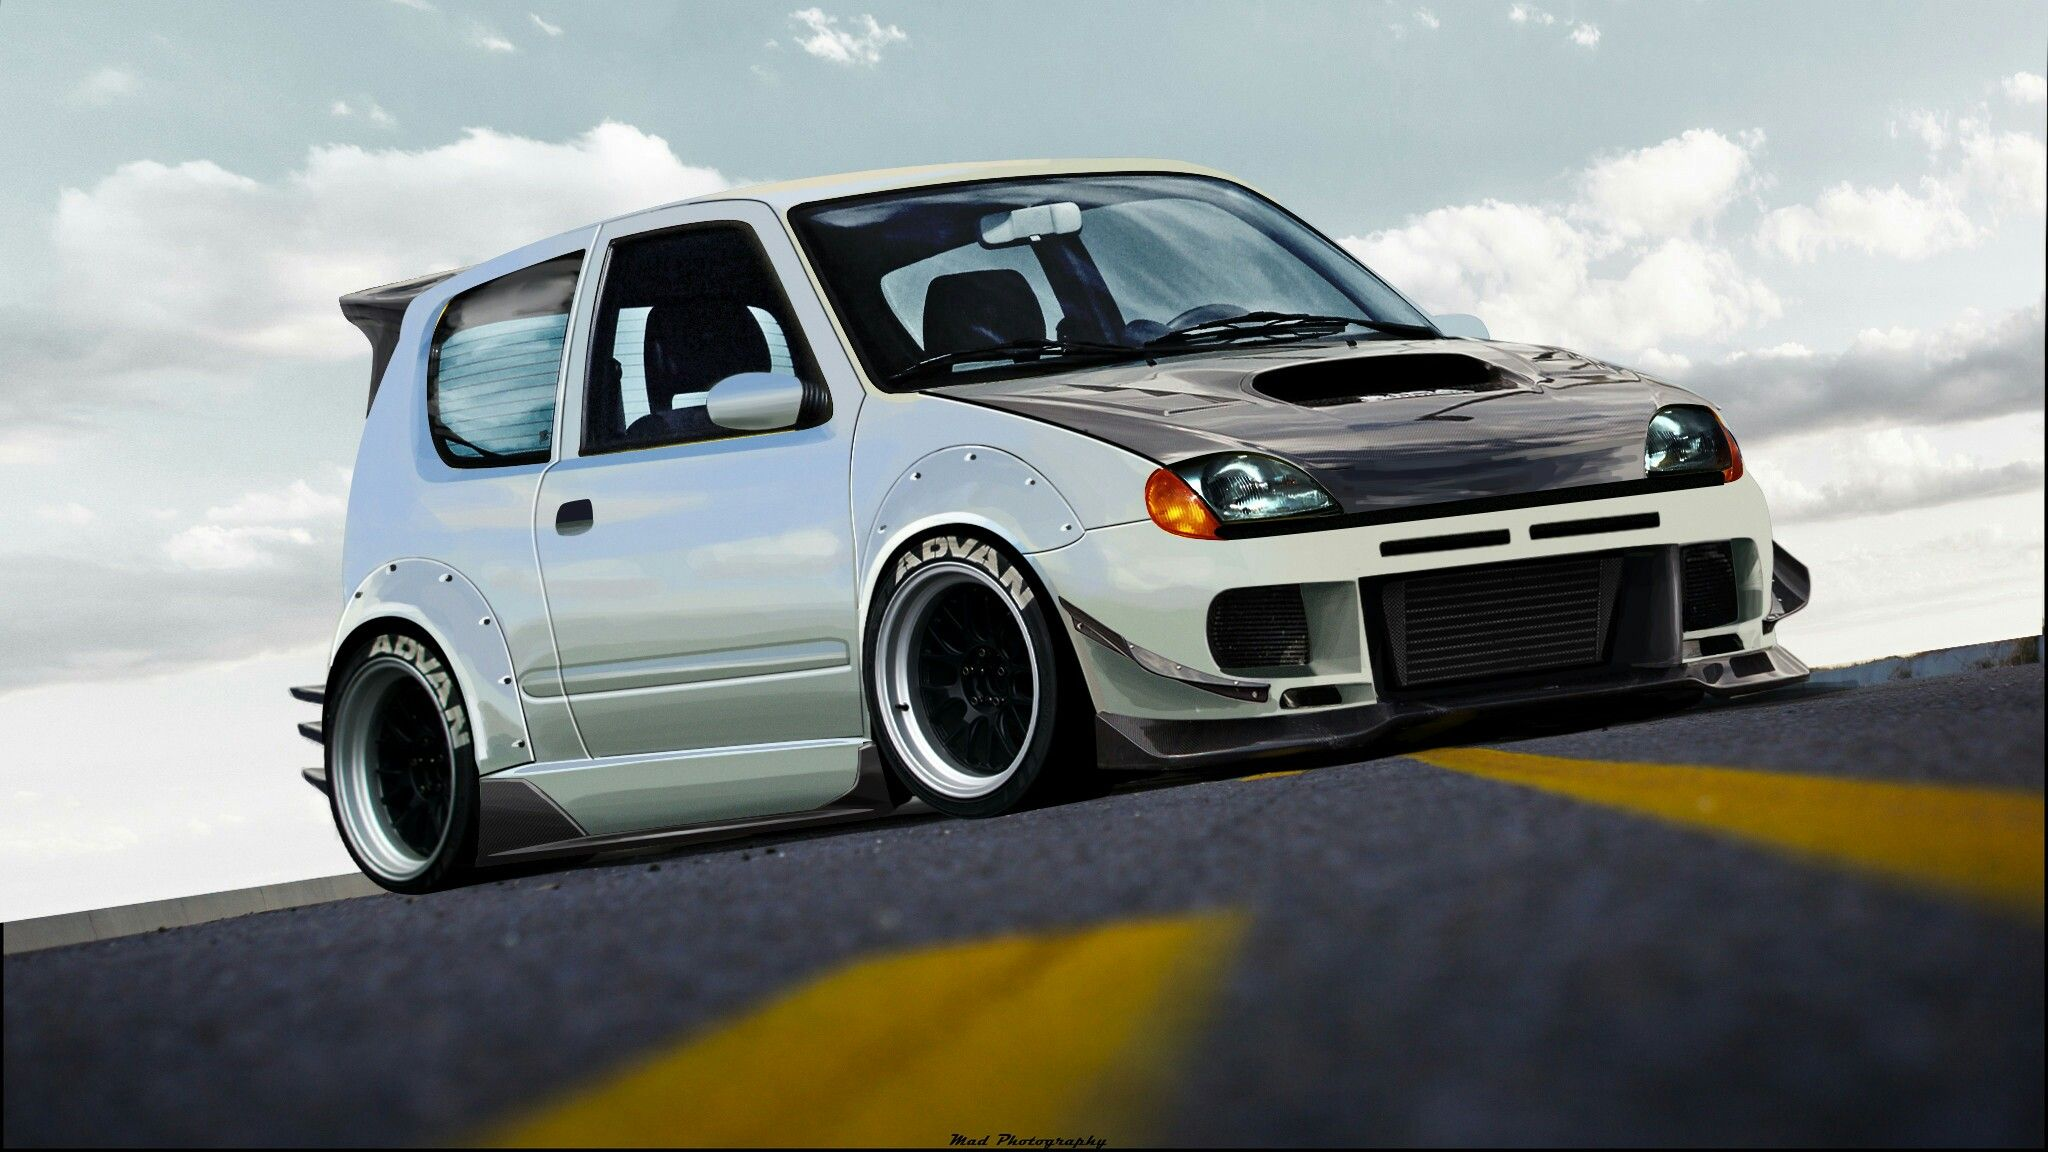 Fiat five hundredfunny carsfiat carssearchcontainerstorageyellowgreenphp fiat seicento